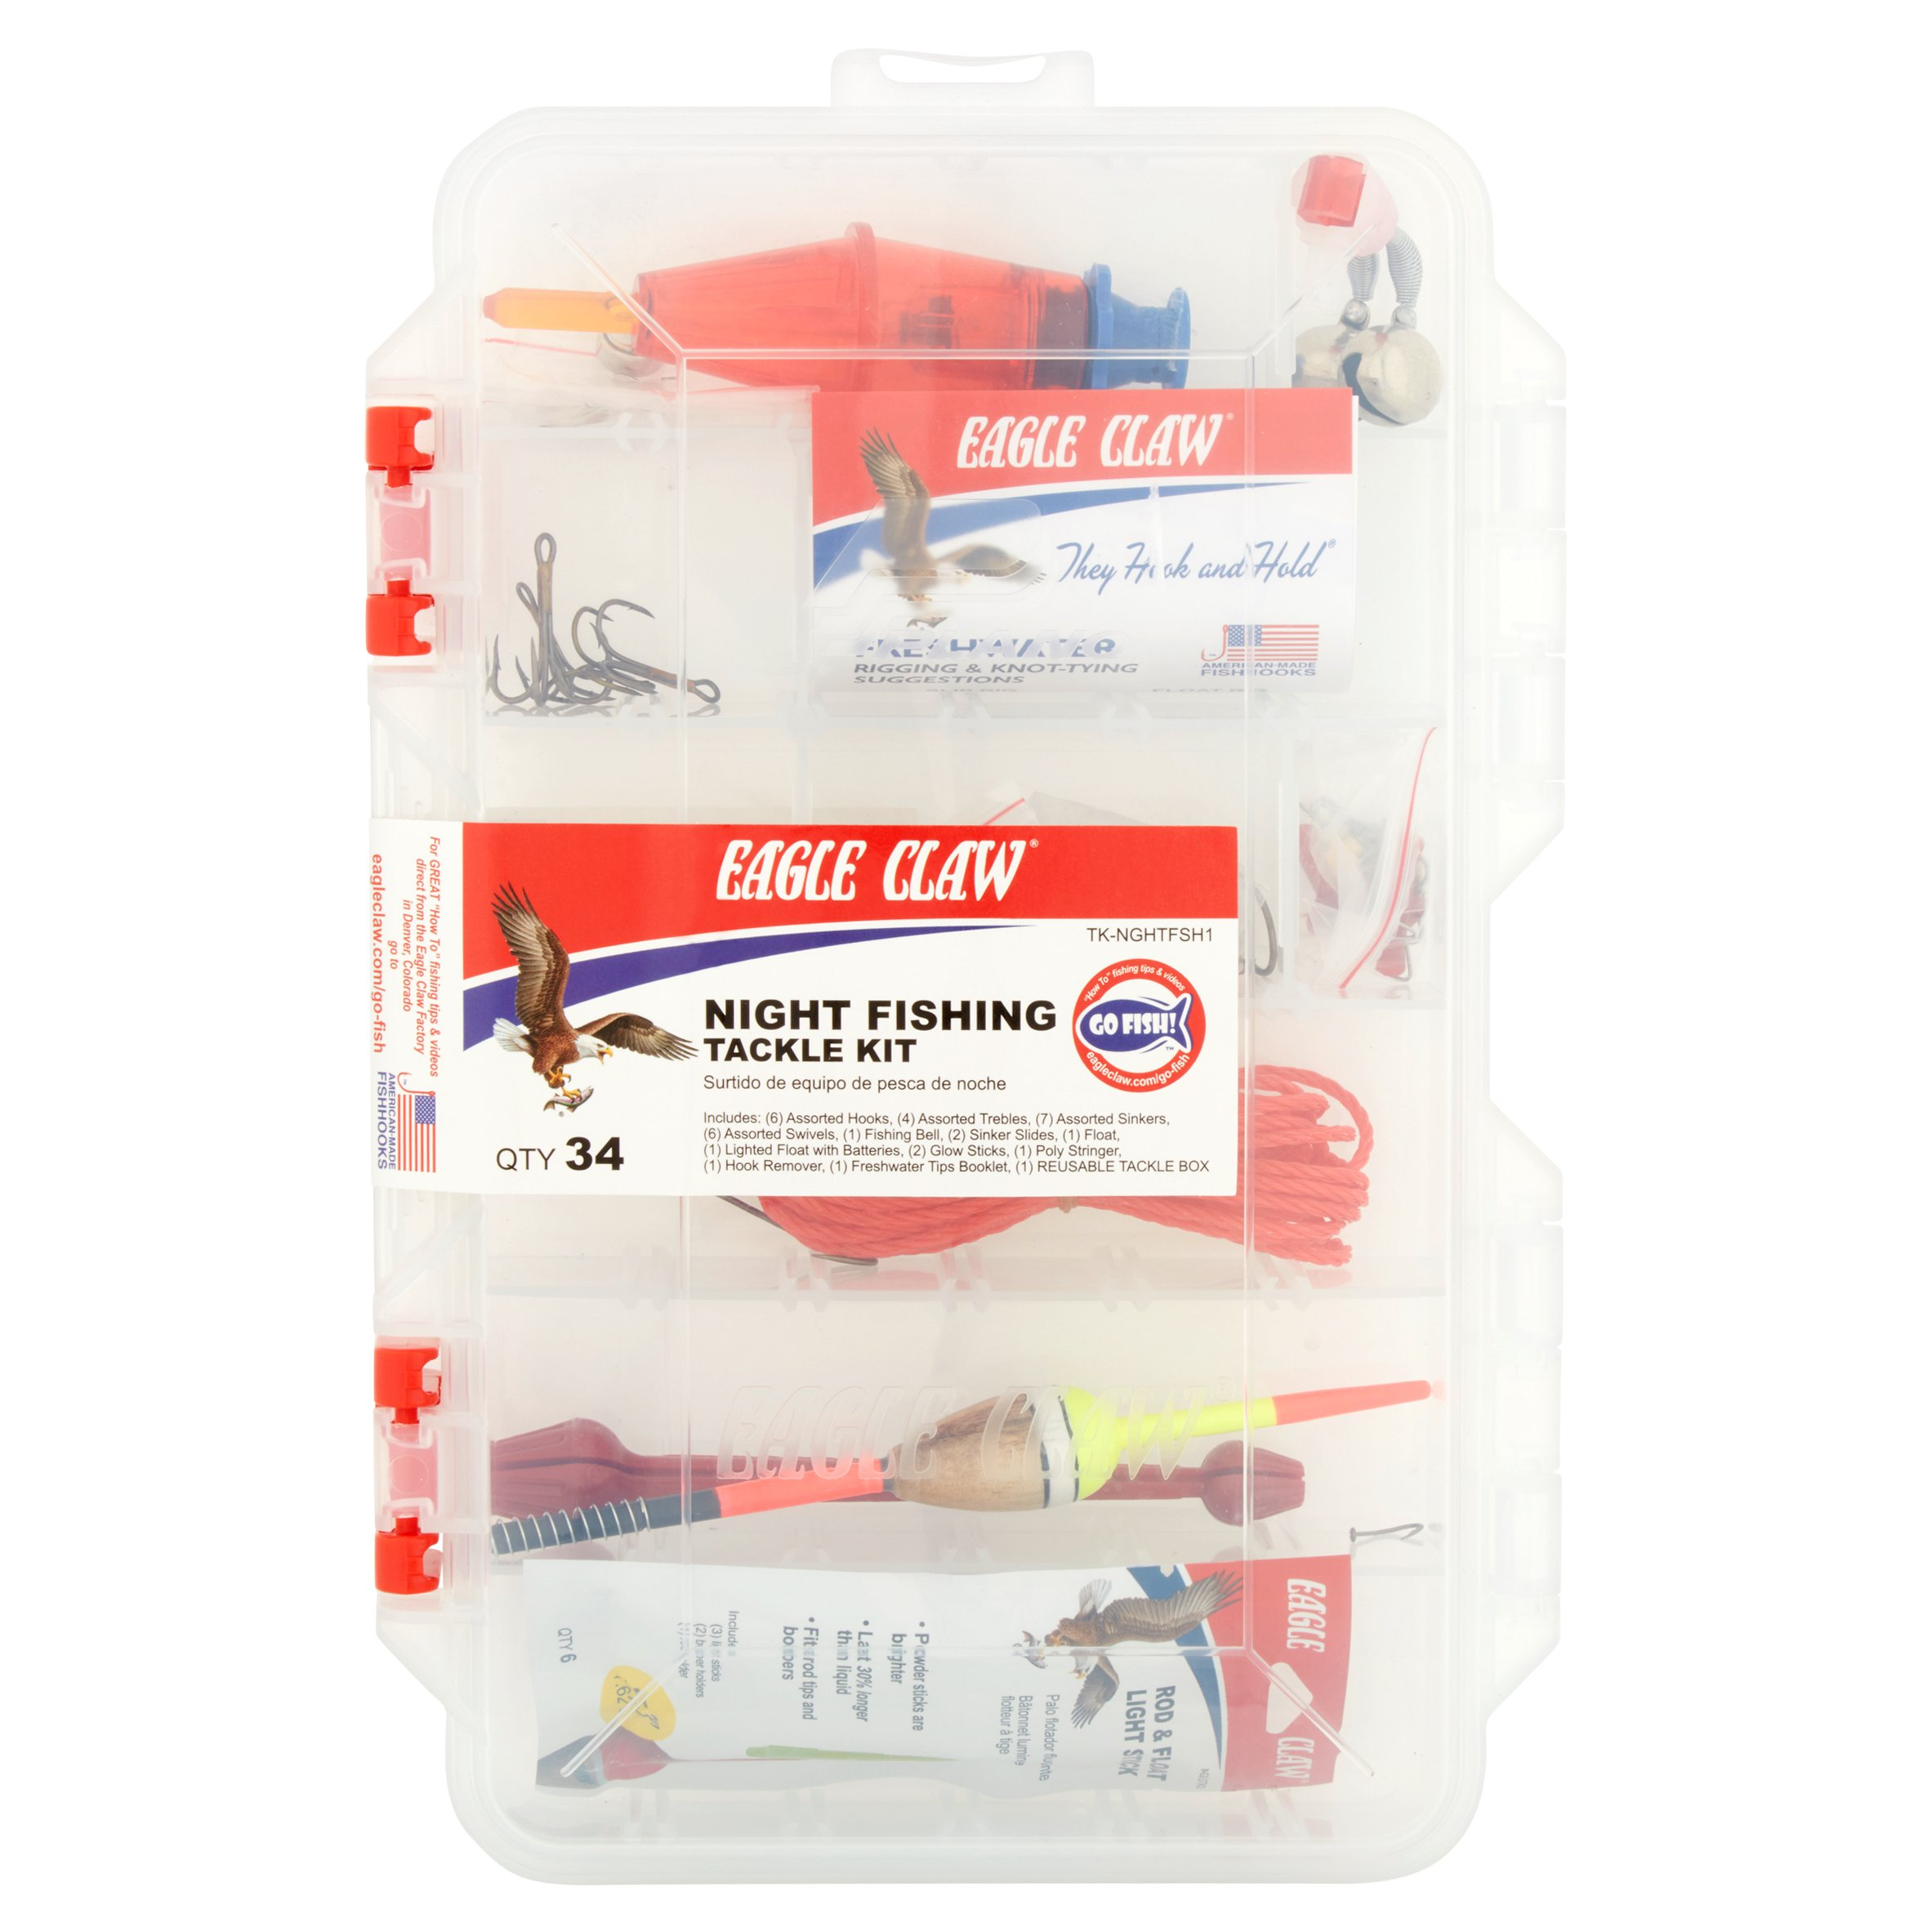 Eagle Claw Night Fishing Tackle Kit, 34 count